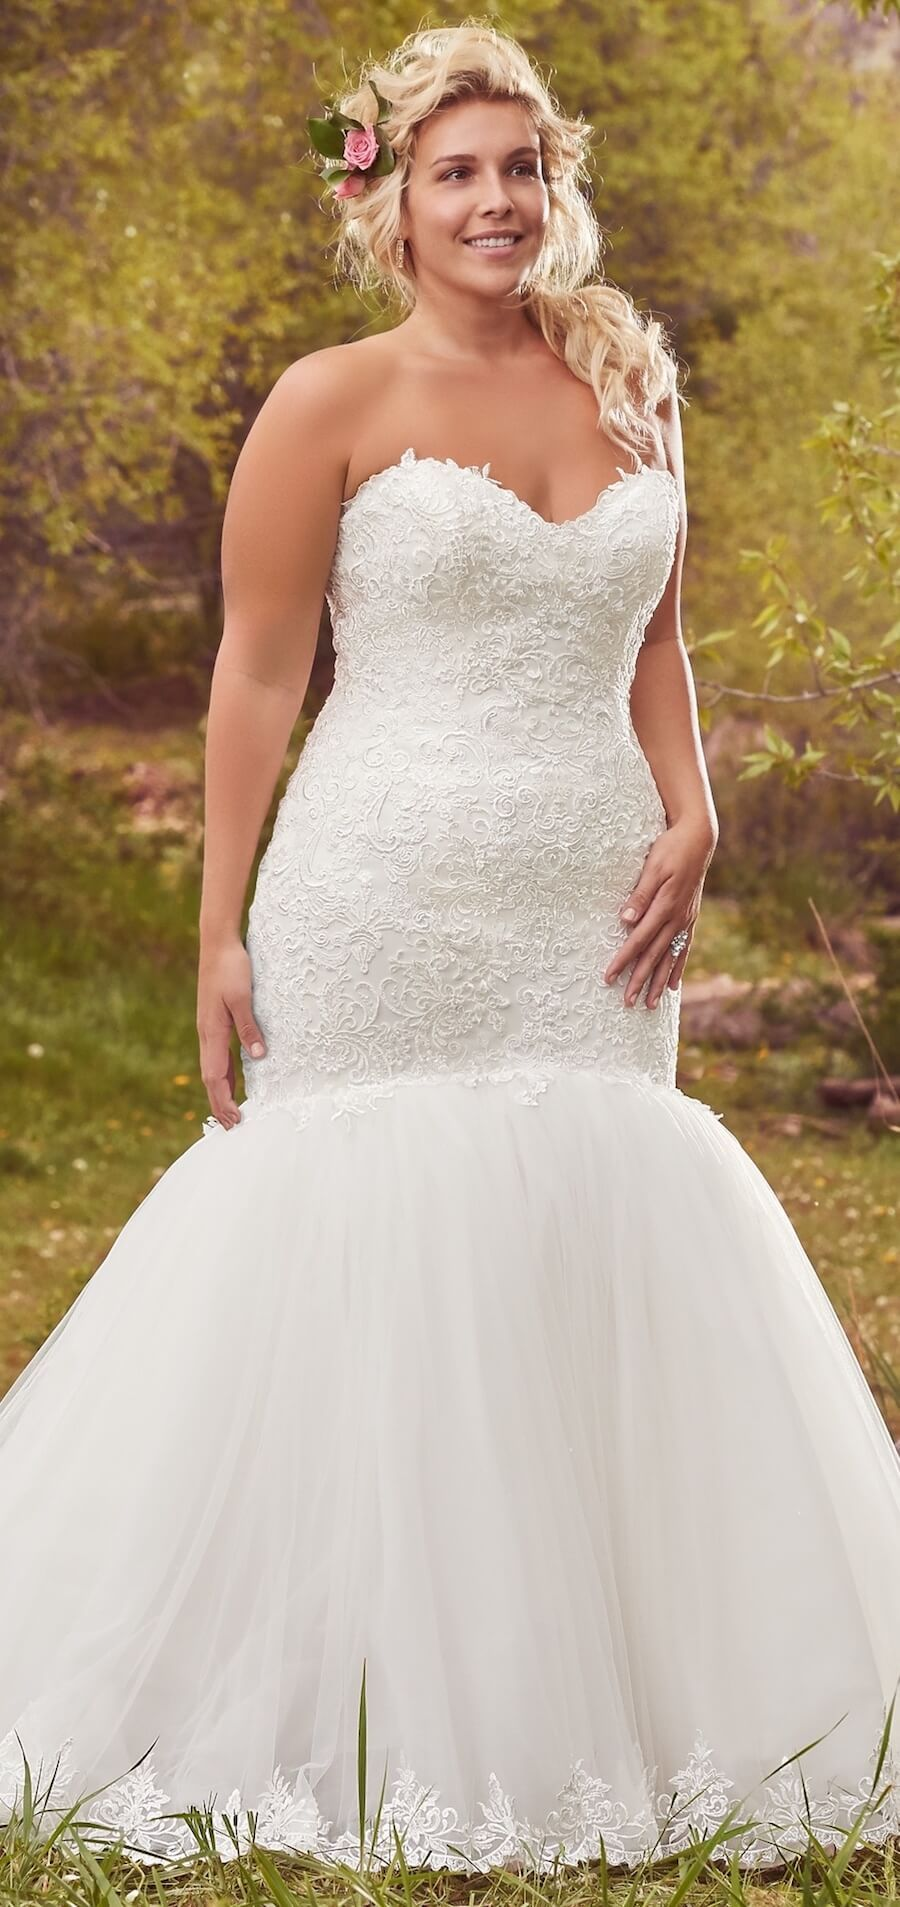 Flattering Plus Size Wedding Gowns For The Stylish And Romantic Bride Belle The Magazine Plus Size Wedding Gowns Wedding Dresses Plus Size Maggie Sottero Wedding Dresses [ 1907 x 900 Pixel ]